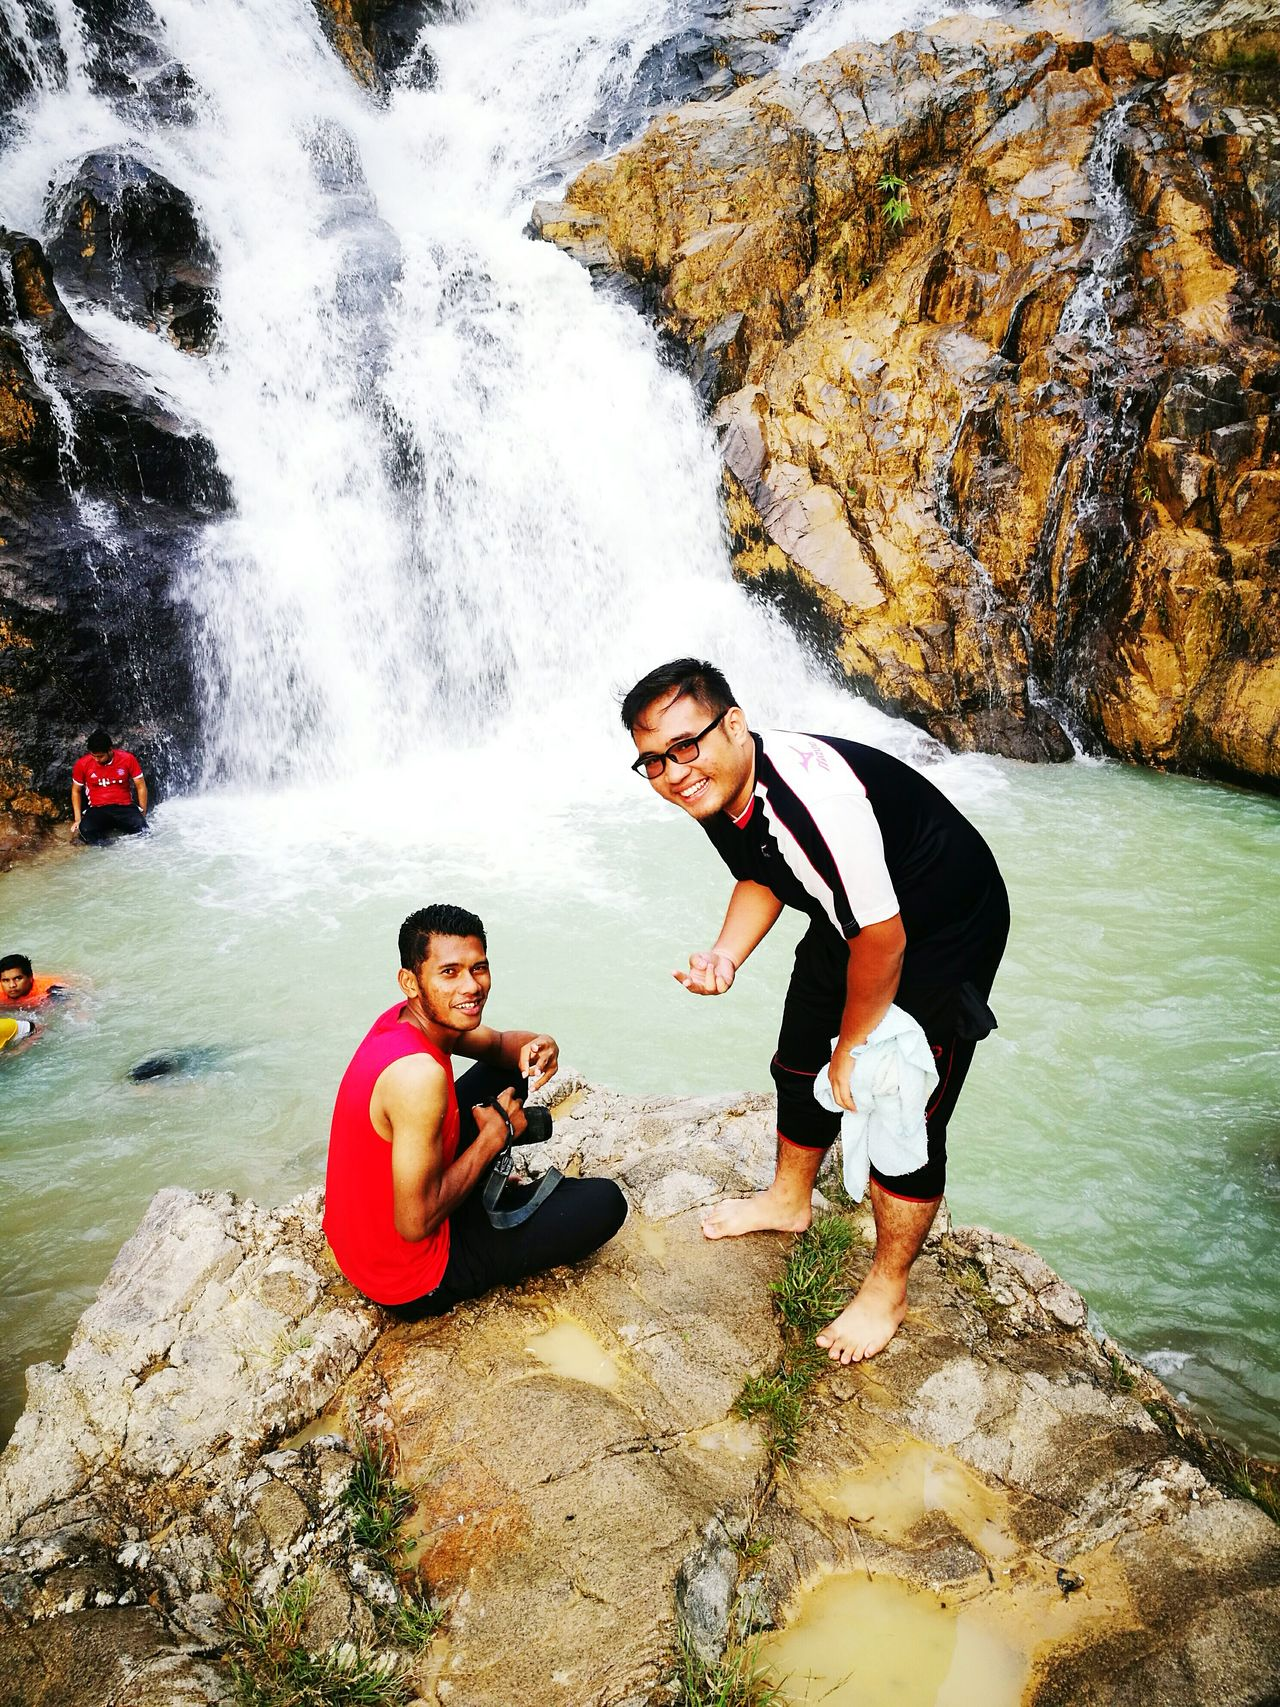 Whatt a nice view water fall. No need go far just in Malaysian..